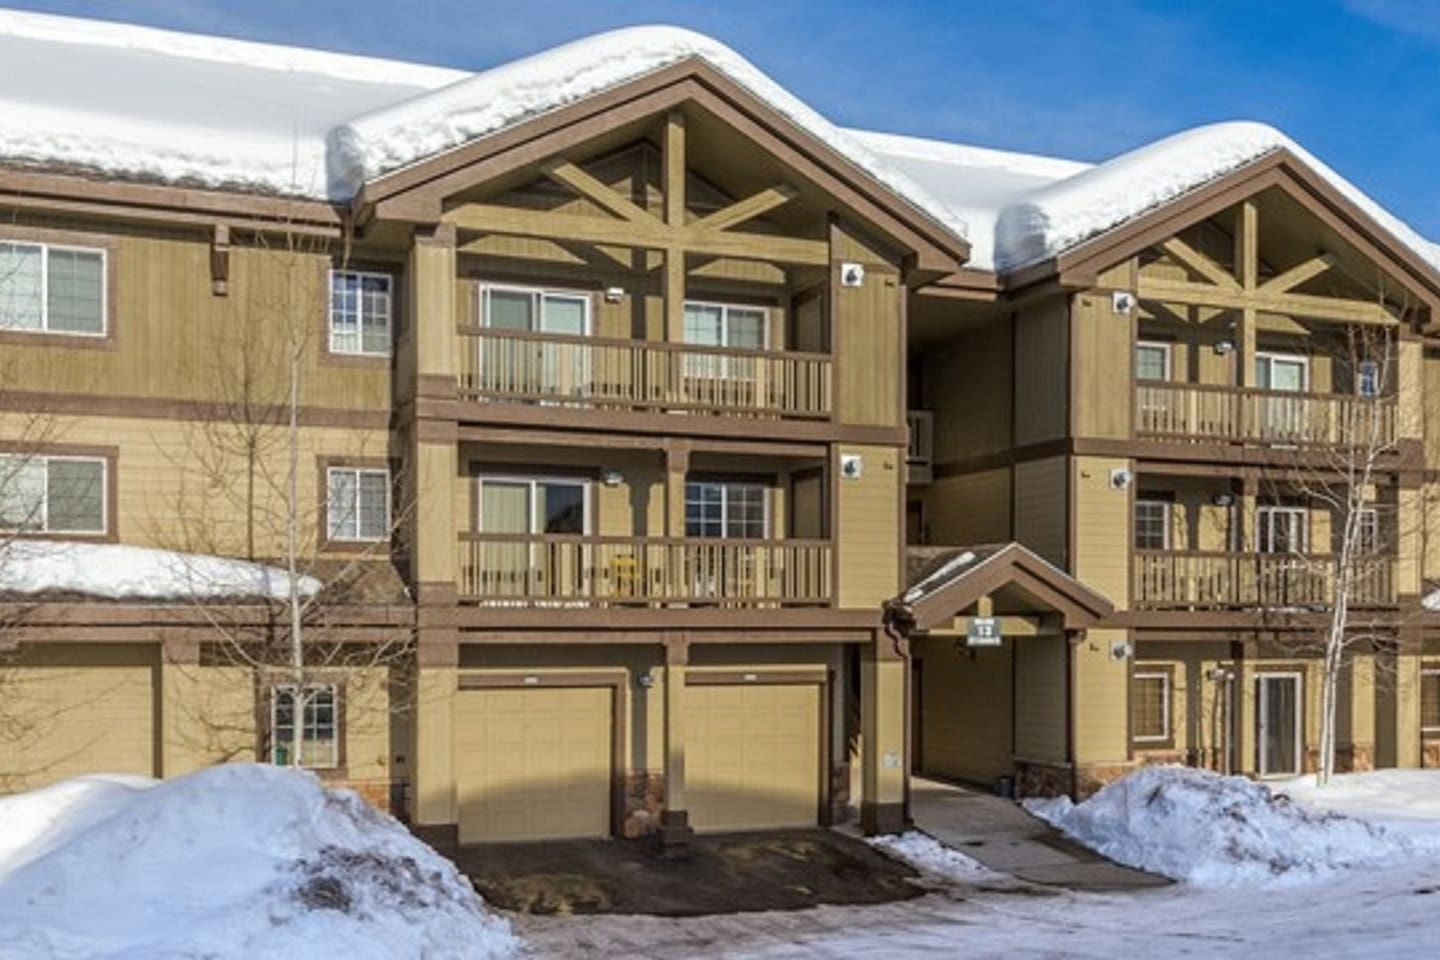 Scooter Boat Ski Condo - Condominiums for Rent in Steamboat Springs ...